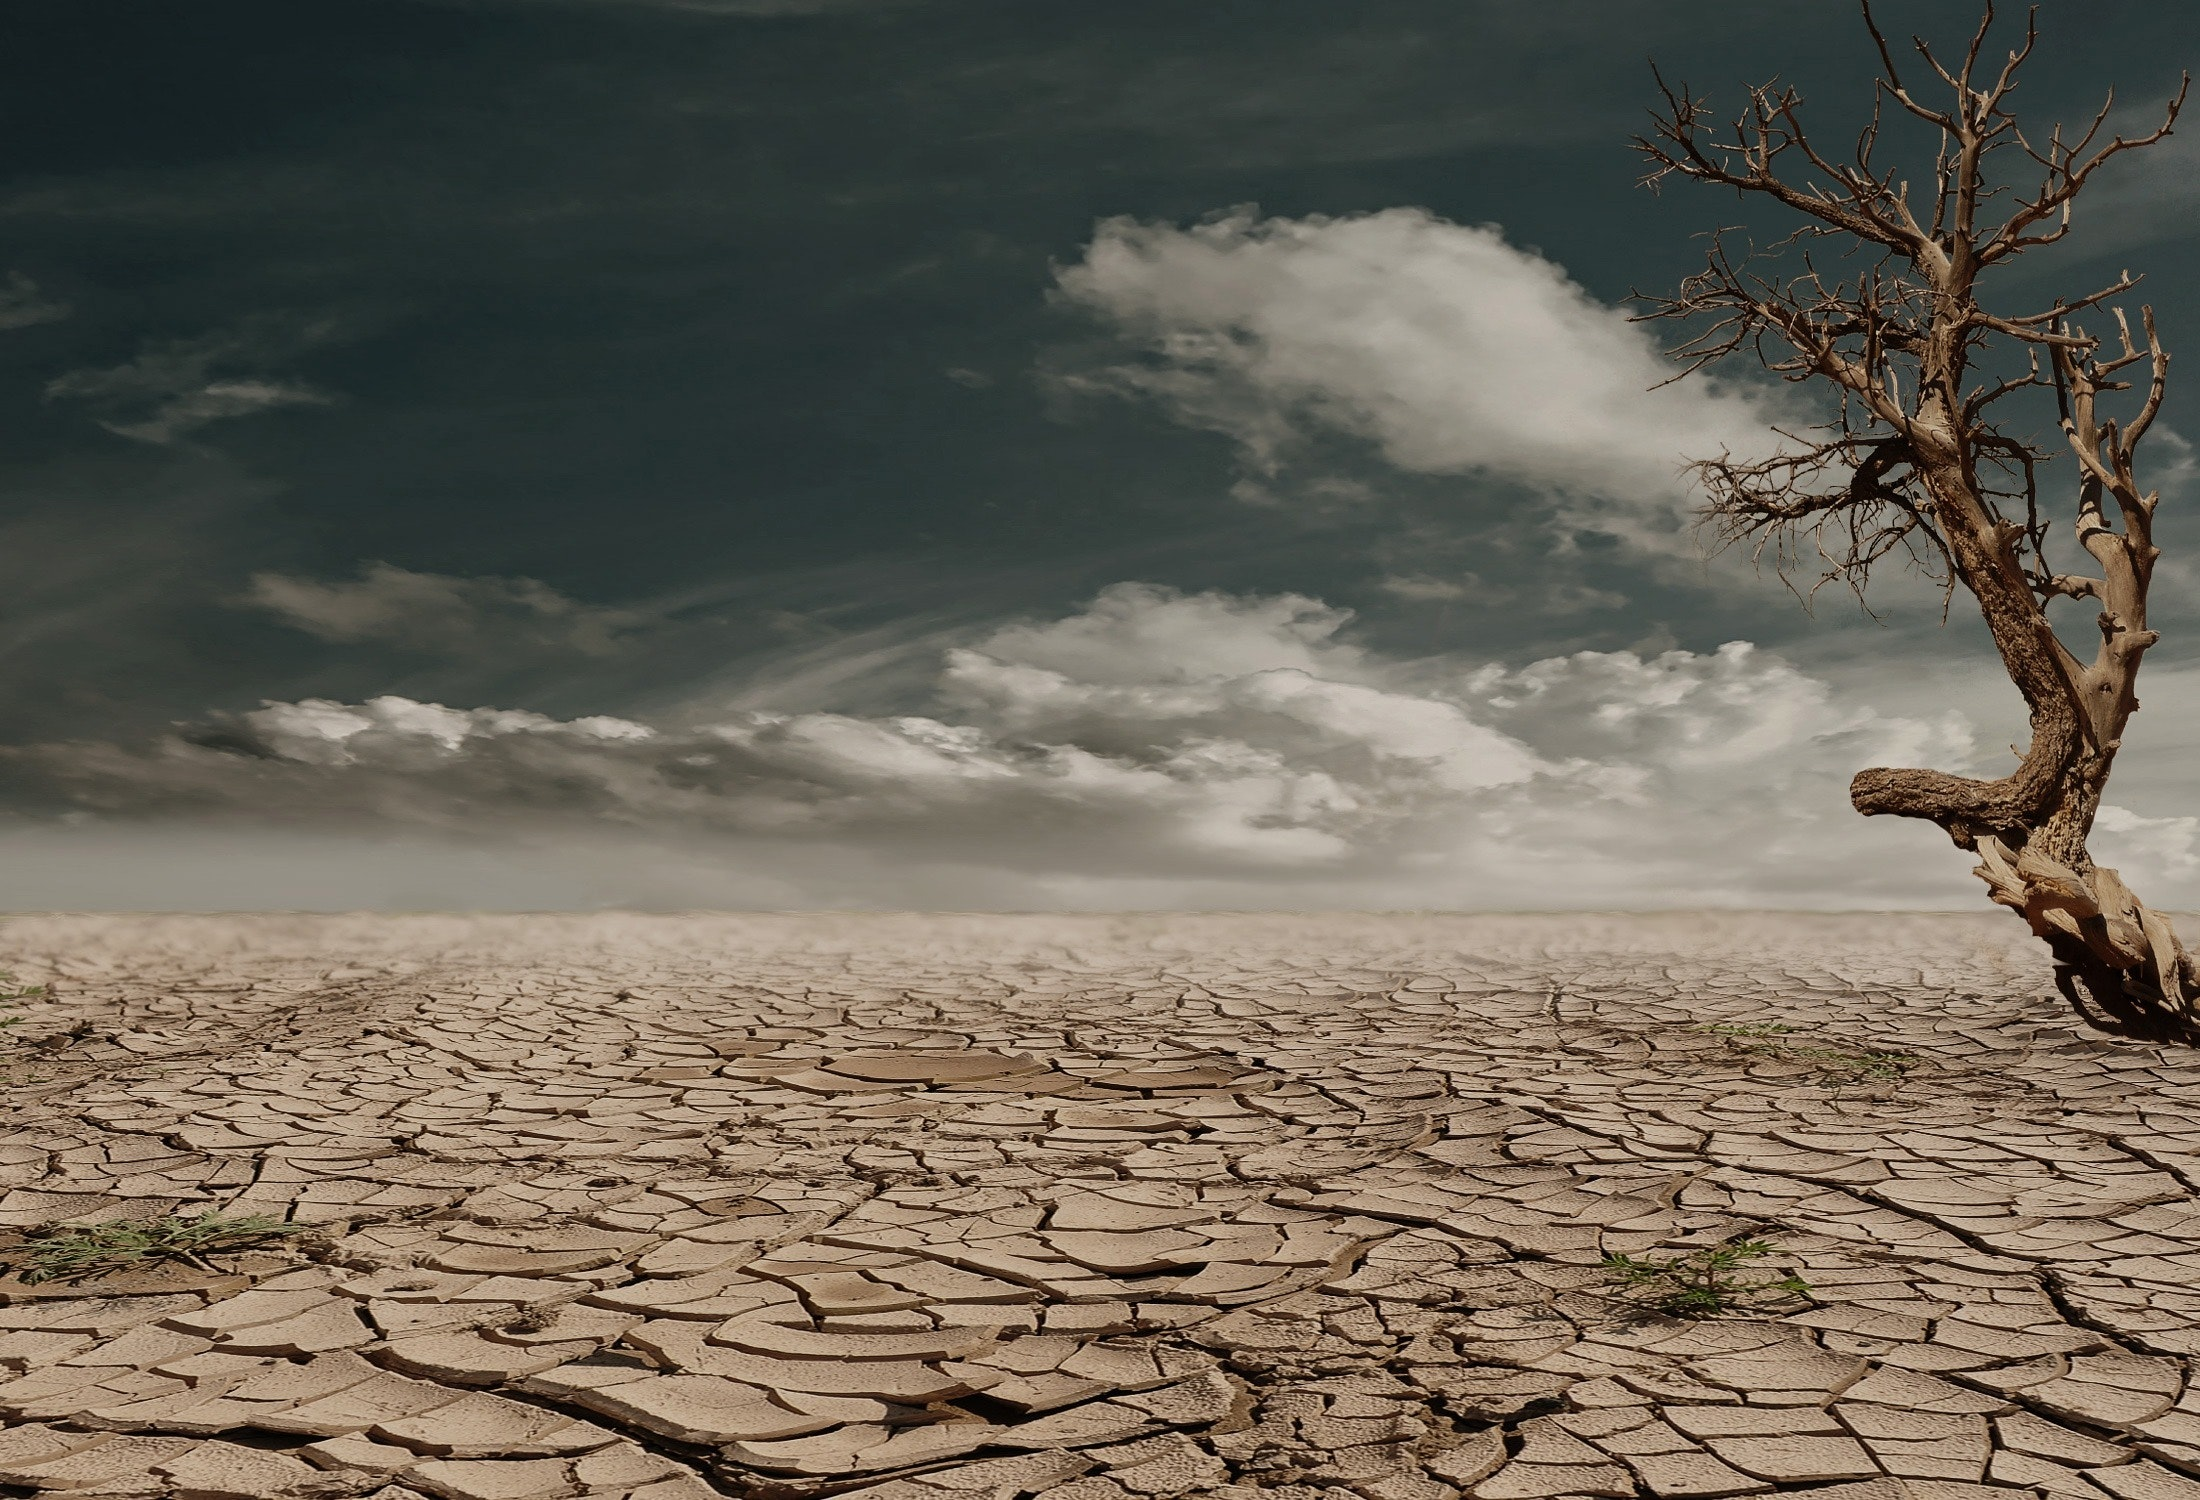 landscape image of arid landscape with cracked ground affected by drought